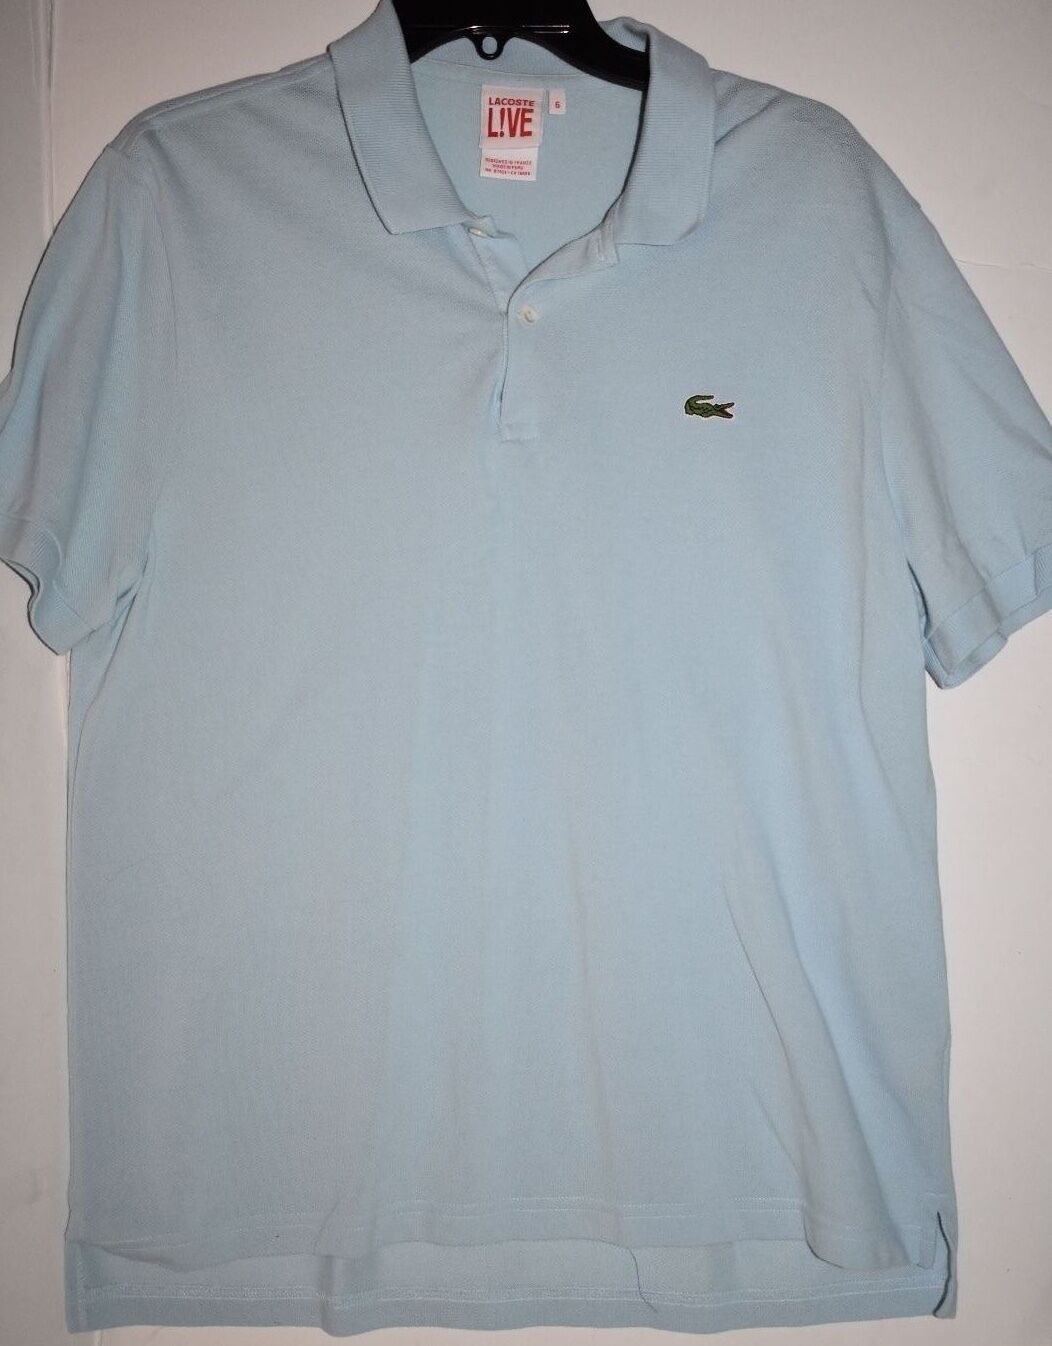 8c5a0180a1 LACOSTE LIVE Men's Polo Shirt Size 6 Large bluee nzyhjf6393-Casual ...